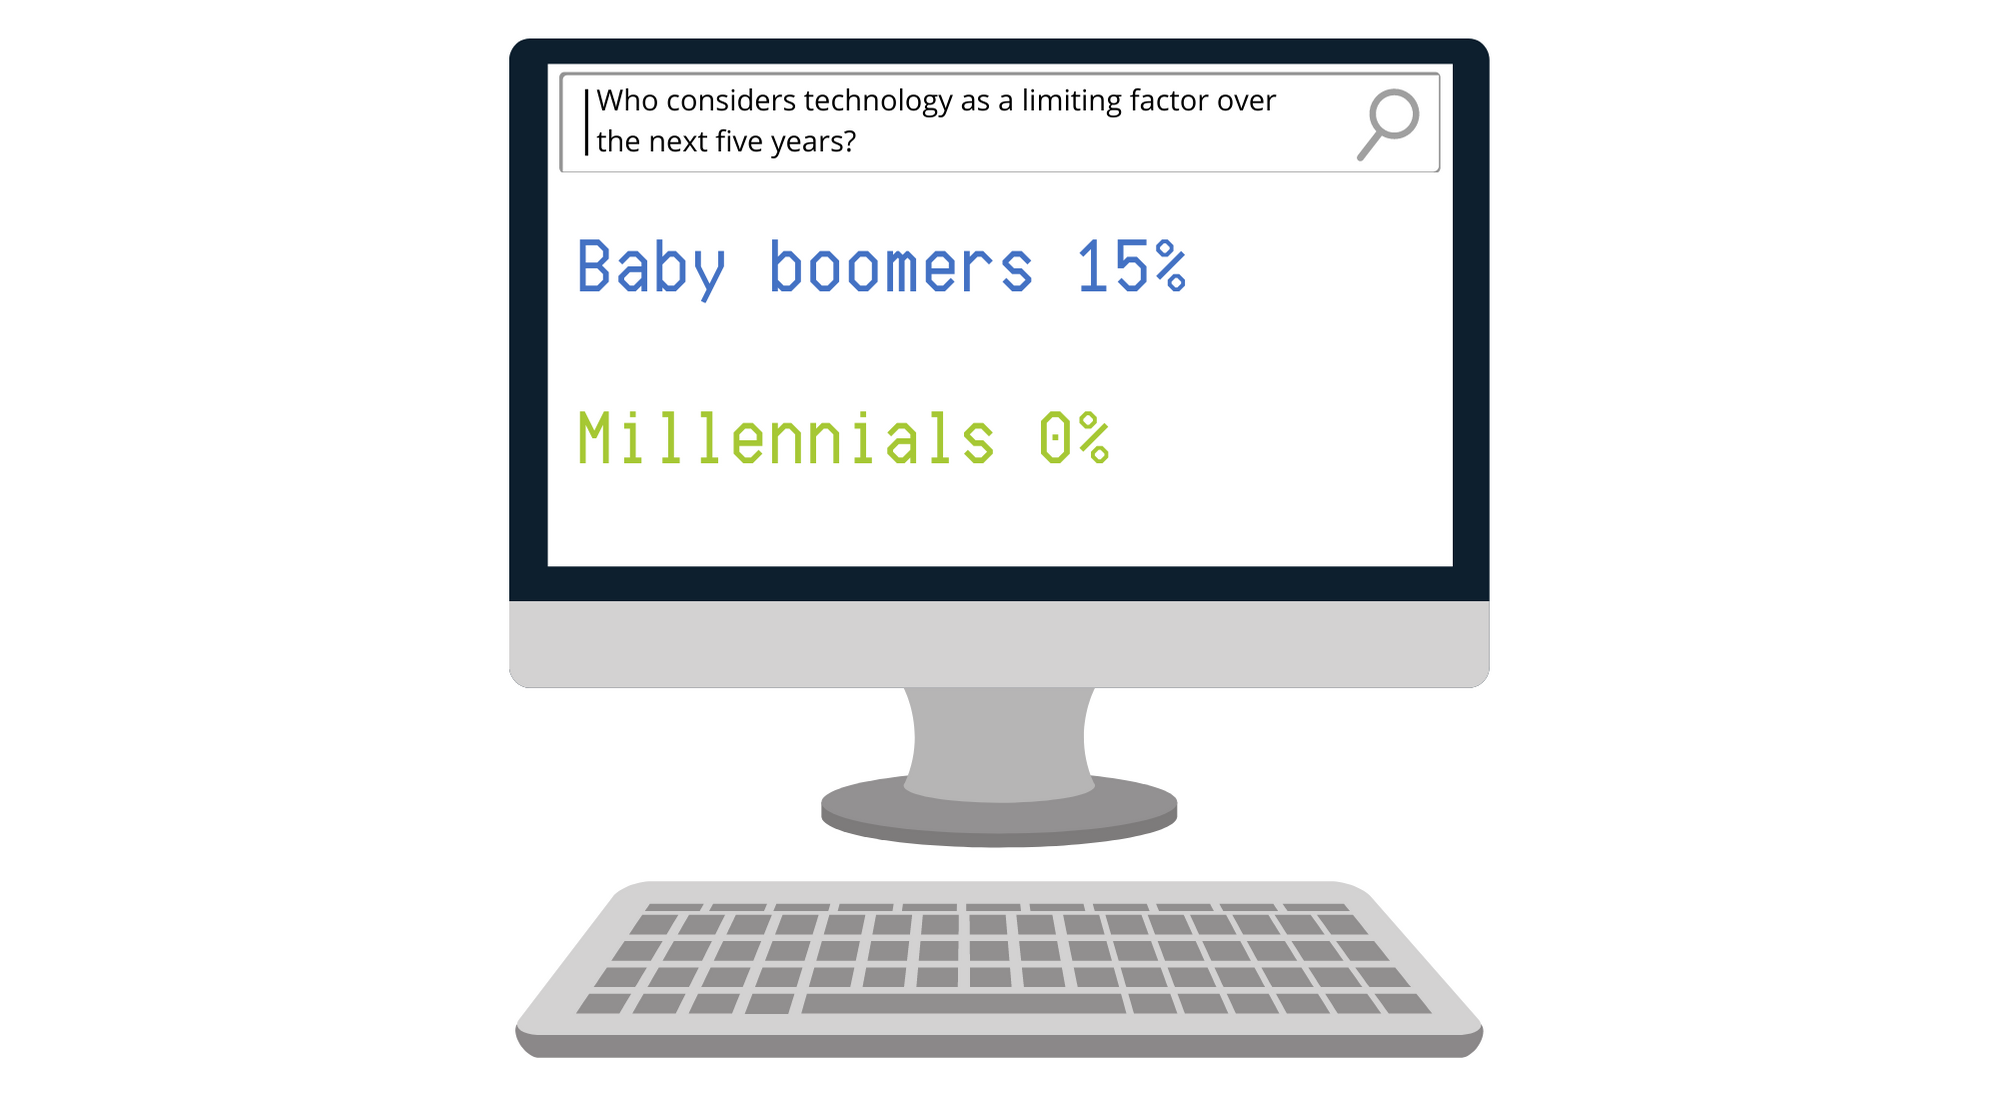 Survey accountants illustrates young millennials aren't worried about technology